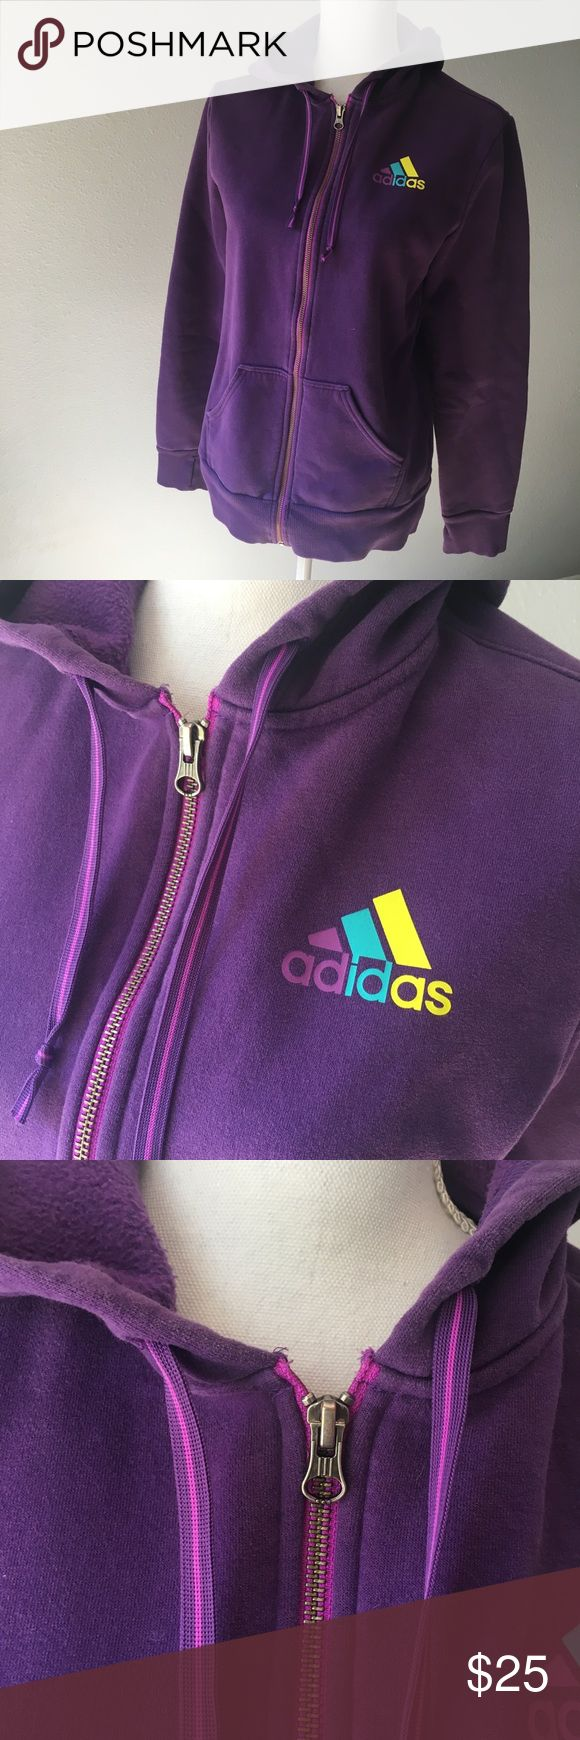 Adidas Purple Zip Up Hoodie No flaws to note. Comes from a smoke-free home.   measurements:  length: 25 inches bust (from pit to pit): 20 inches  I'm a very fast shipper and love to make deals on bundles. Let me know if you have any questions. <3 adidas Tops Sweatshirts & Hoodies